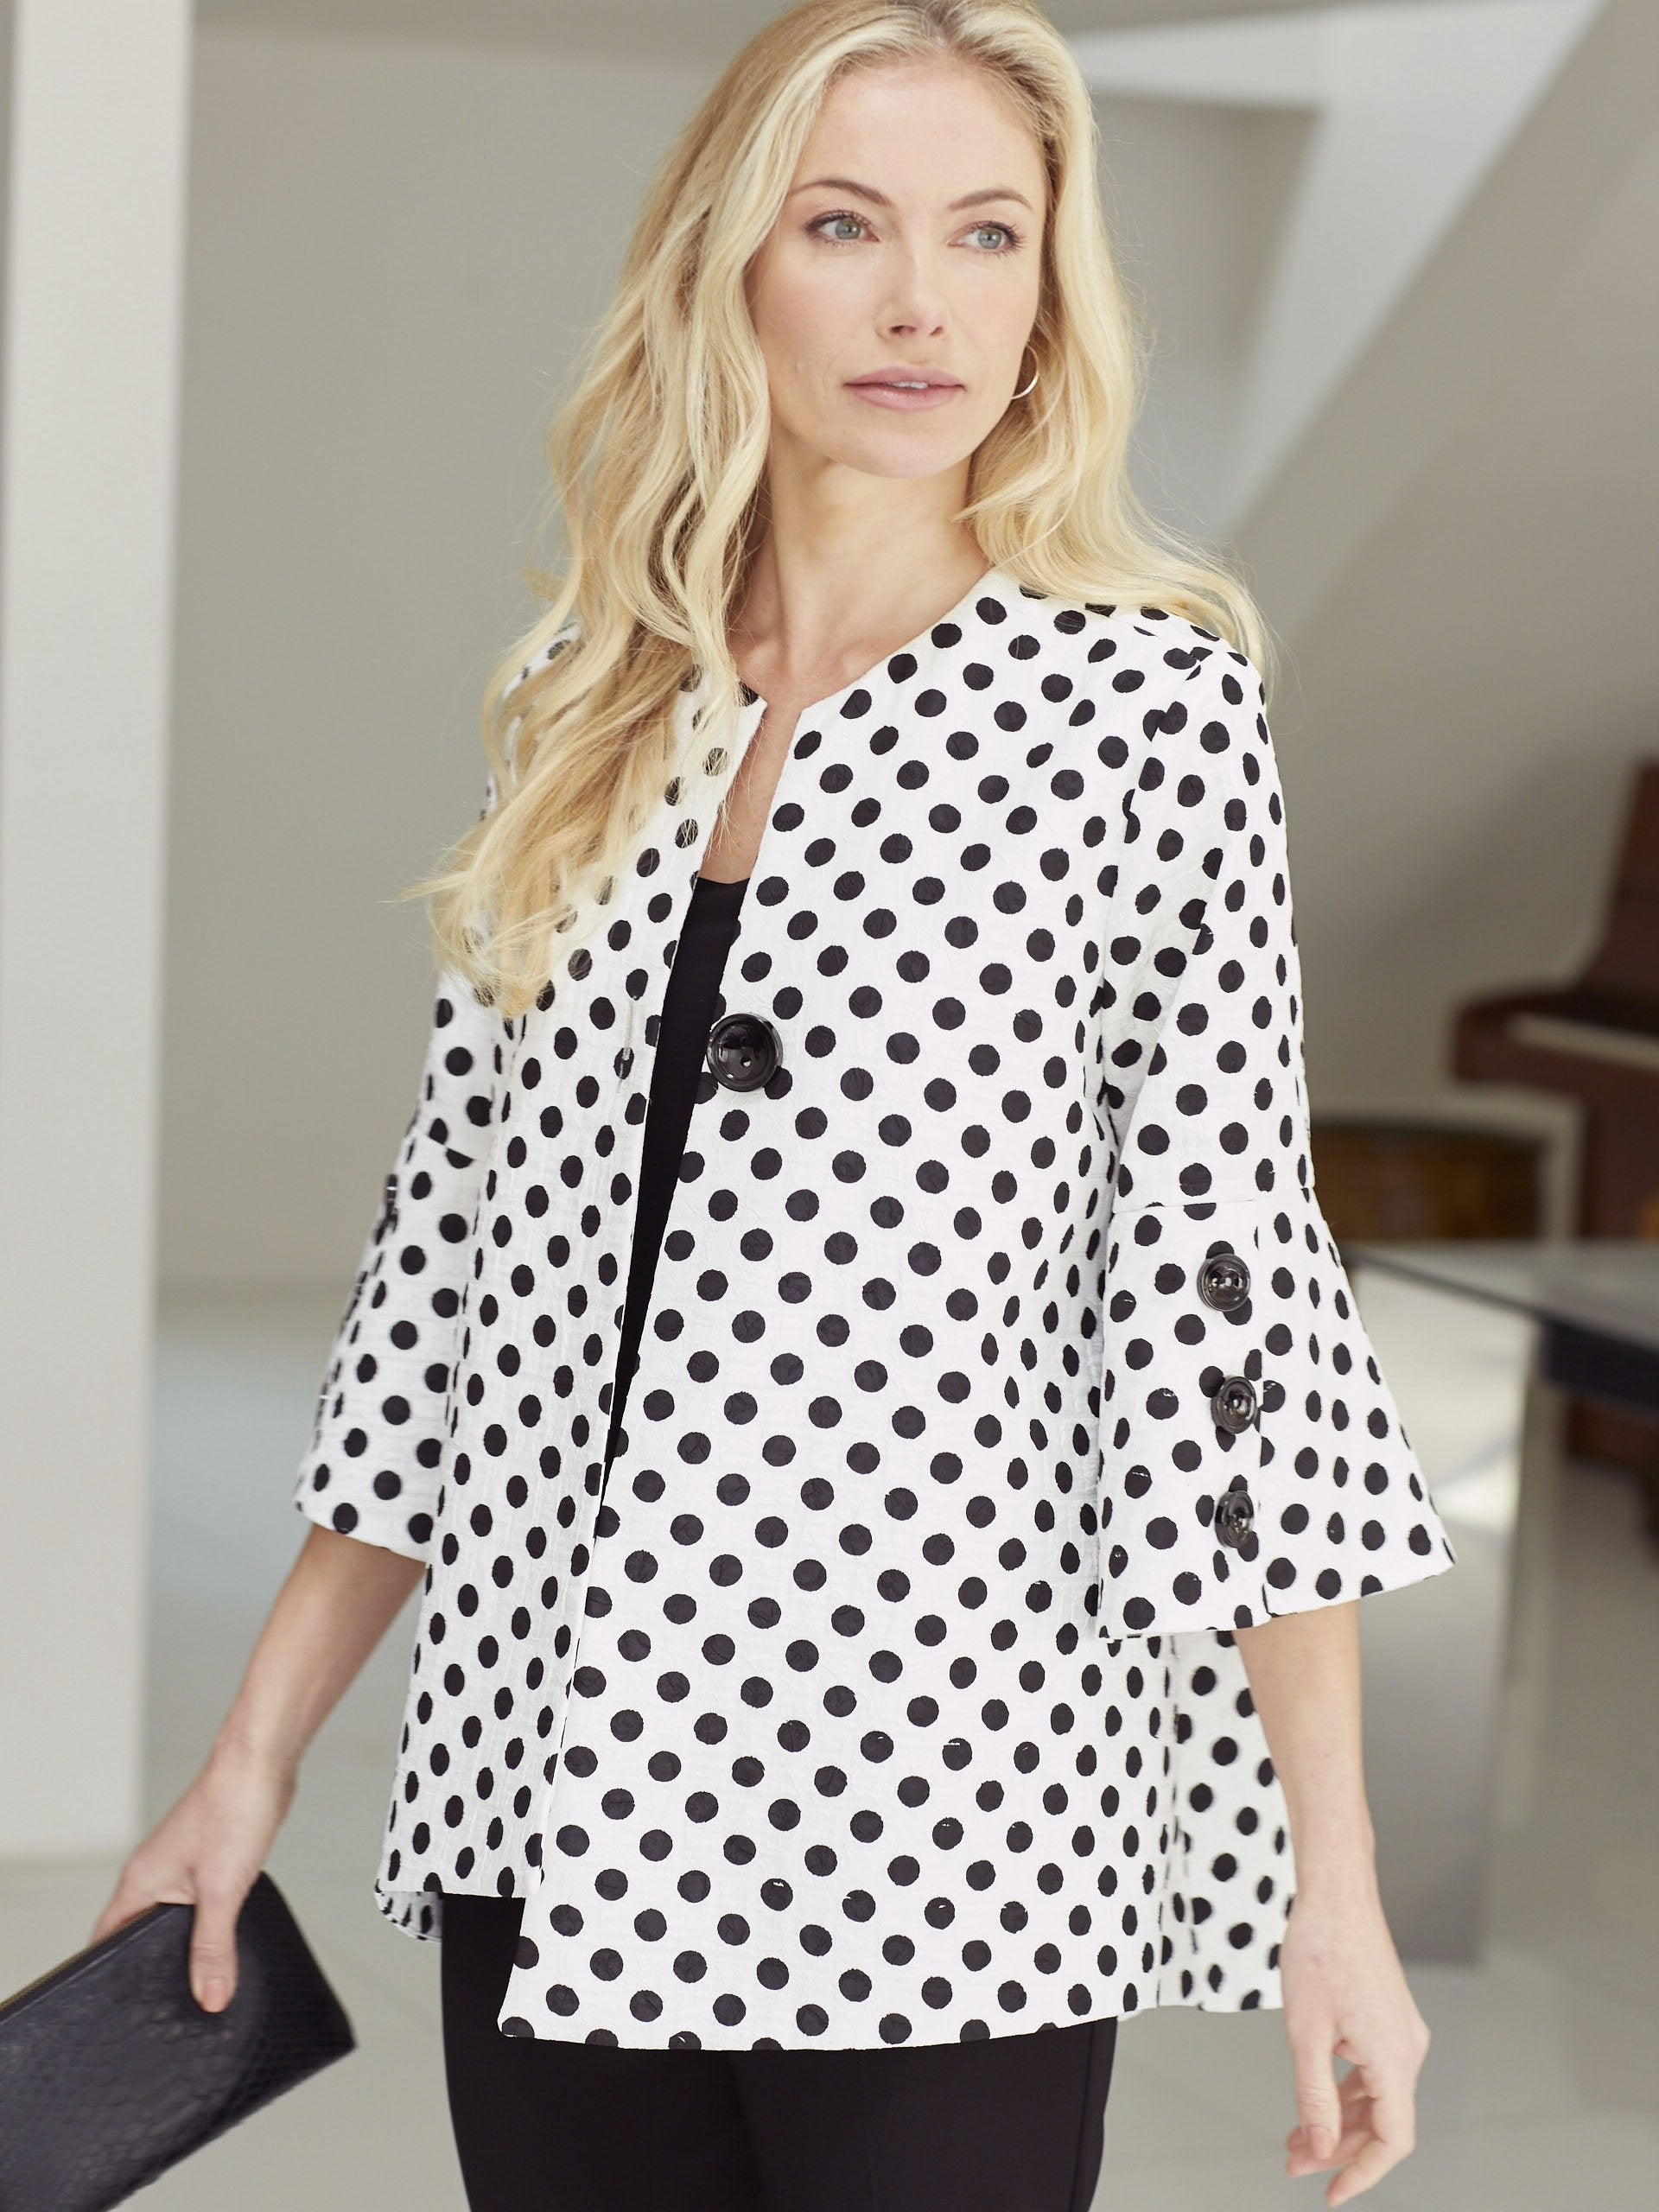 Joseph Ribkoff White/Black Spot Jacket